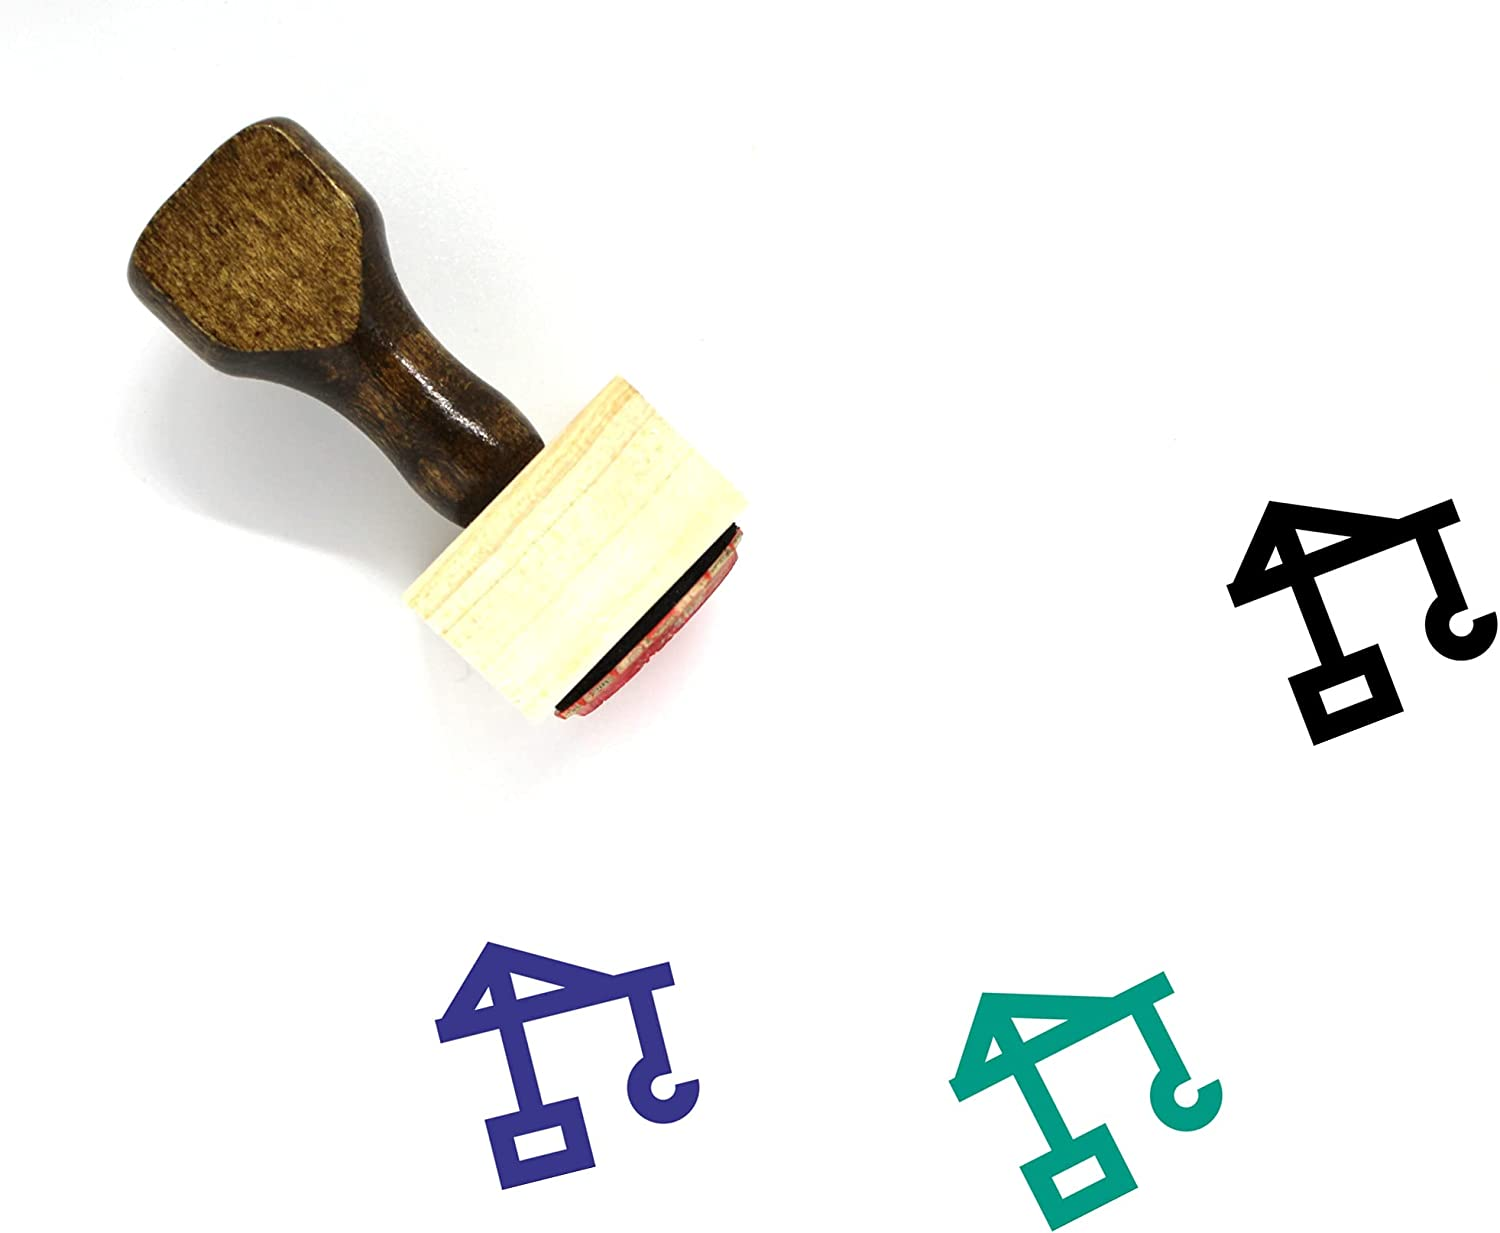 Container New Shipping Free Shipping Challenge the lowest price of Japan ☆ Lifter Wooden Rubber Stamp 3